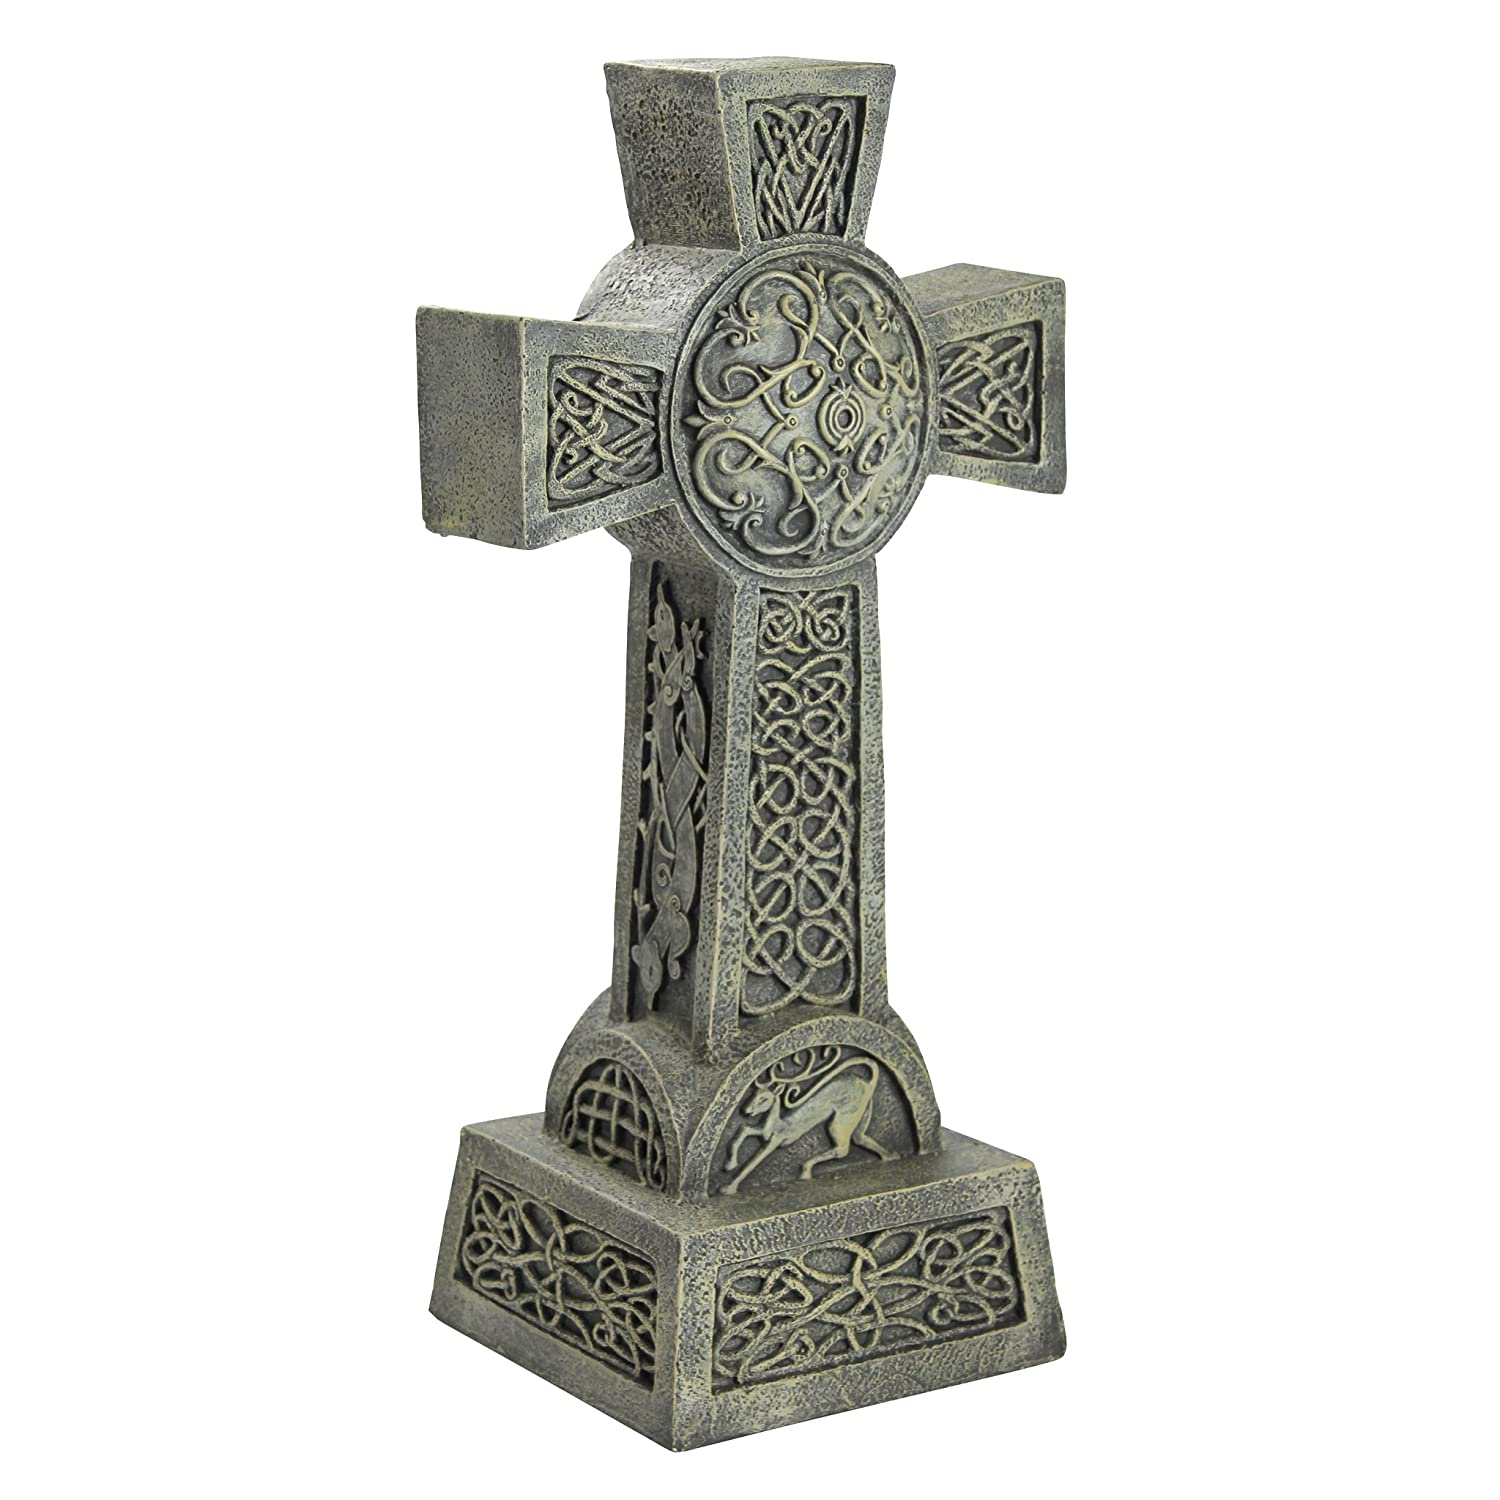 Design Toscano Donegal Celtic High Cross Statue - Irish Cross Statue - Memorial Statue